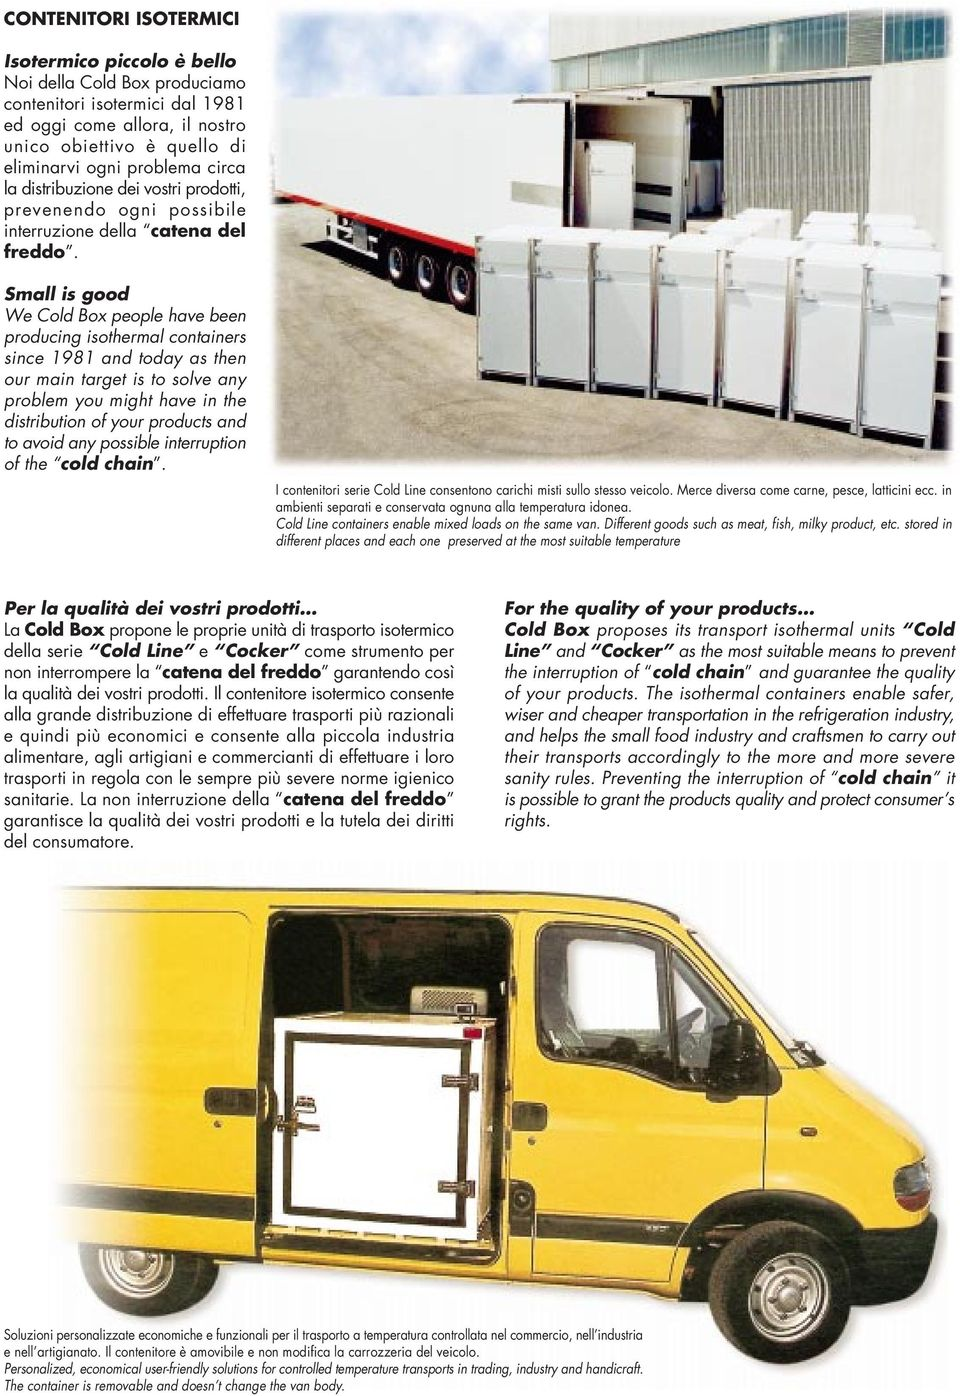 Small is good We Cold Box people have been producing isothermal containers since 1981 and today as then our main target is to solve any problem you might have in the distribution of your products and